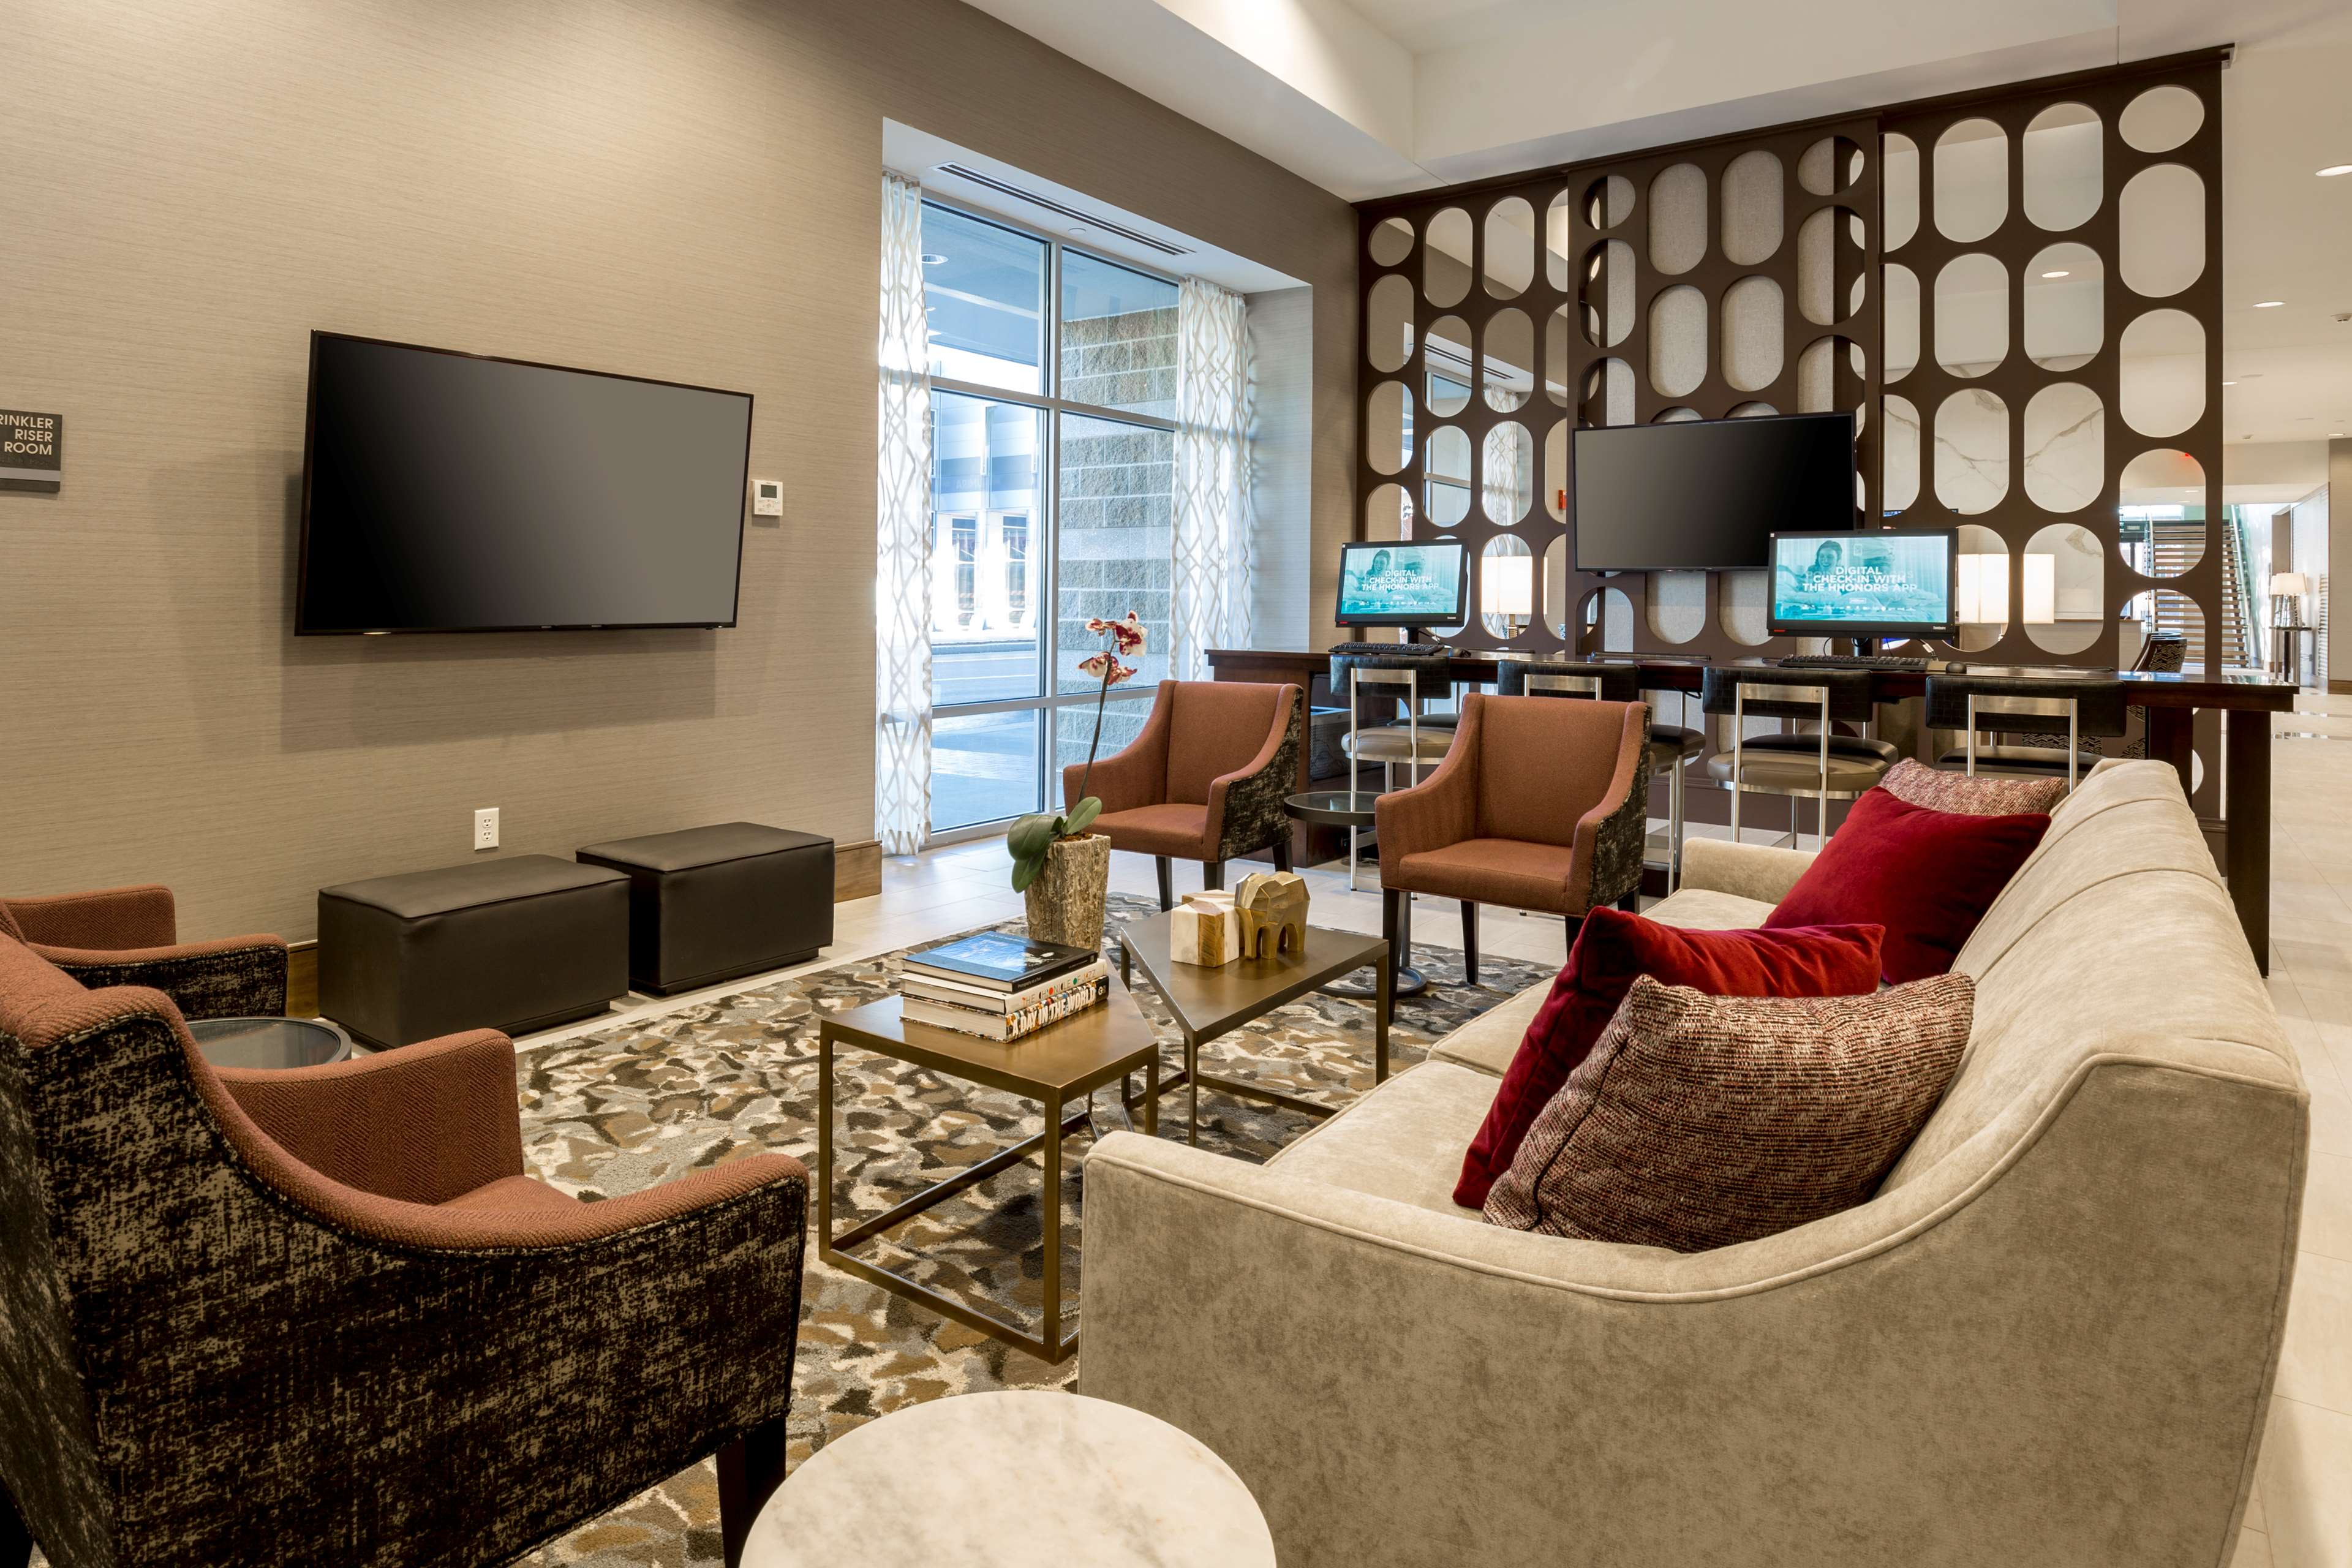 DoubleTree by Hilton Evansville image 8